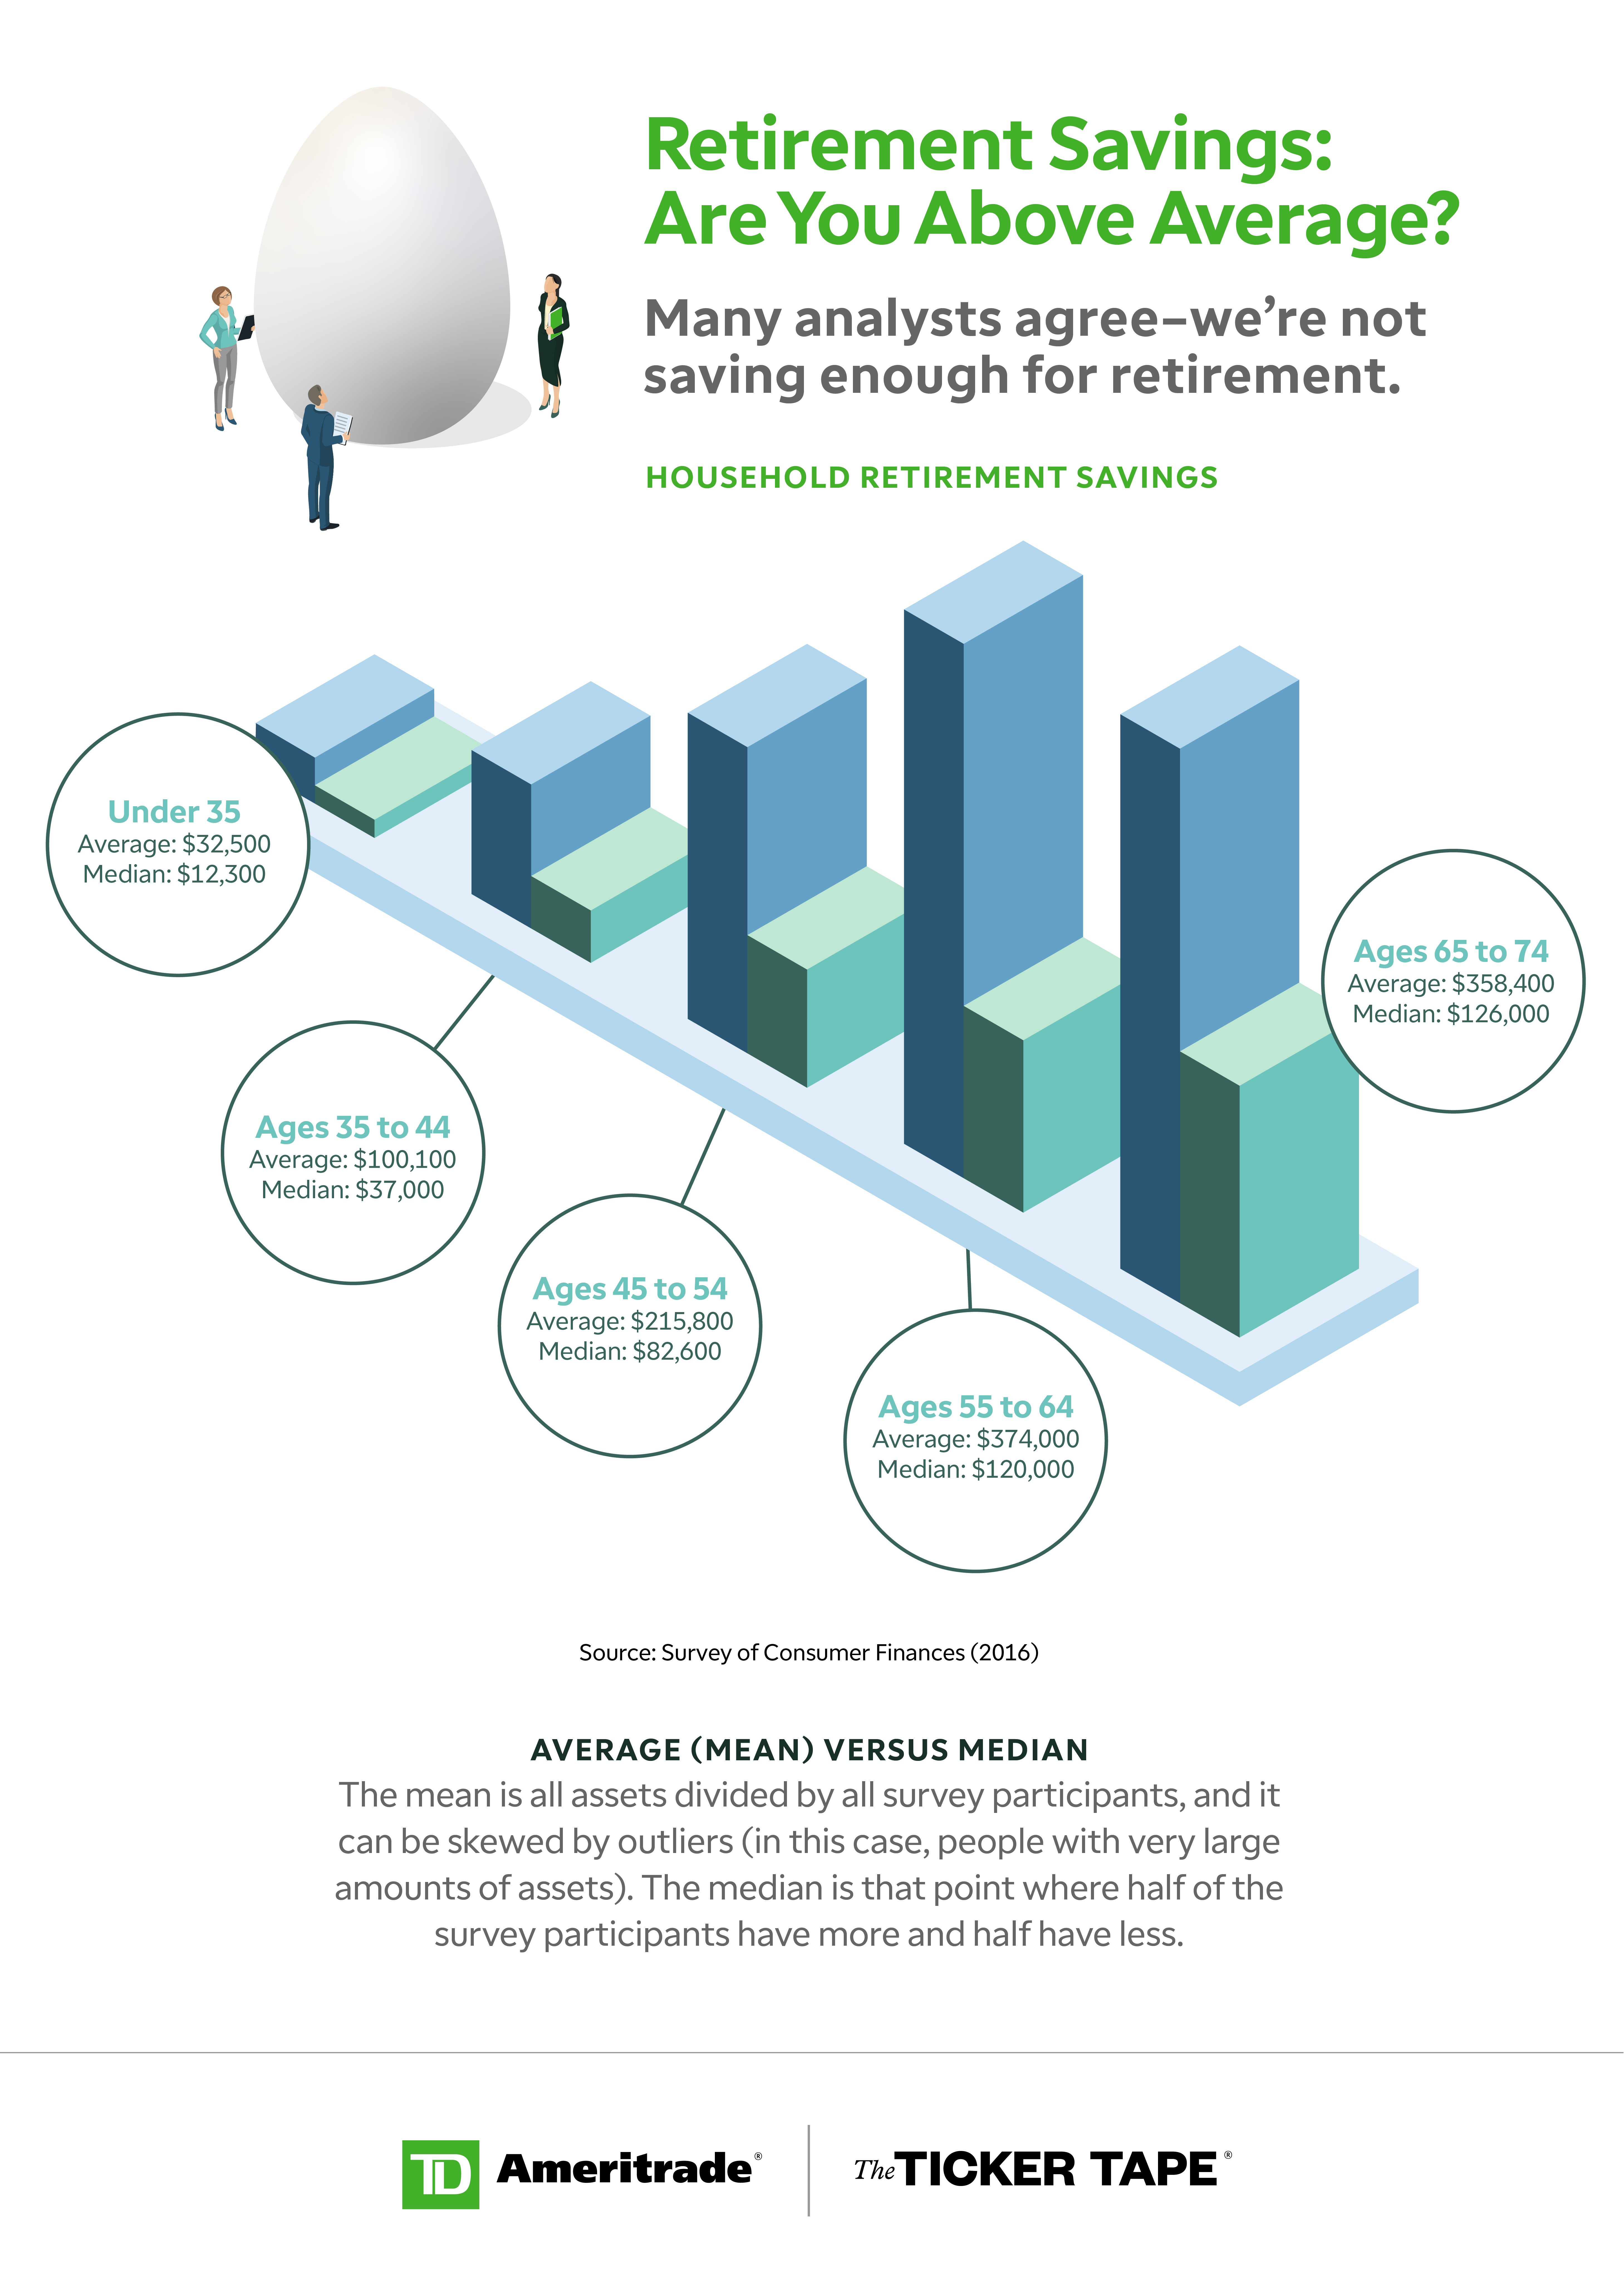 Retirement savings: Are you above average?